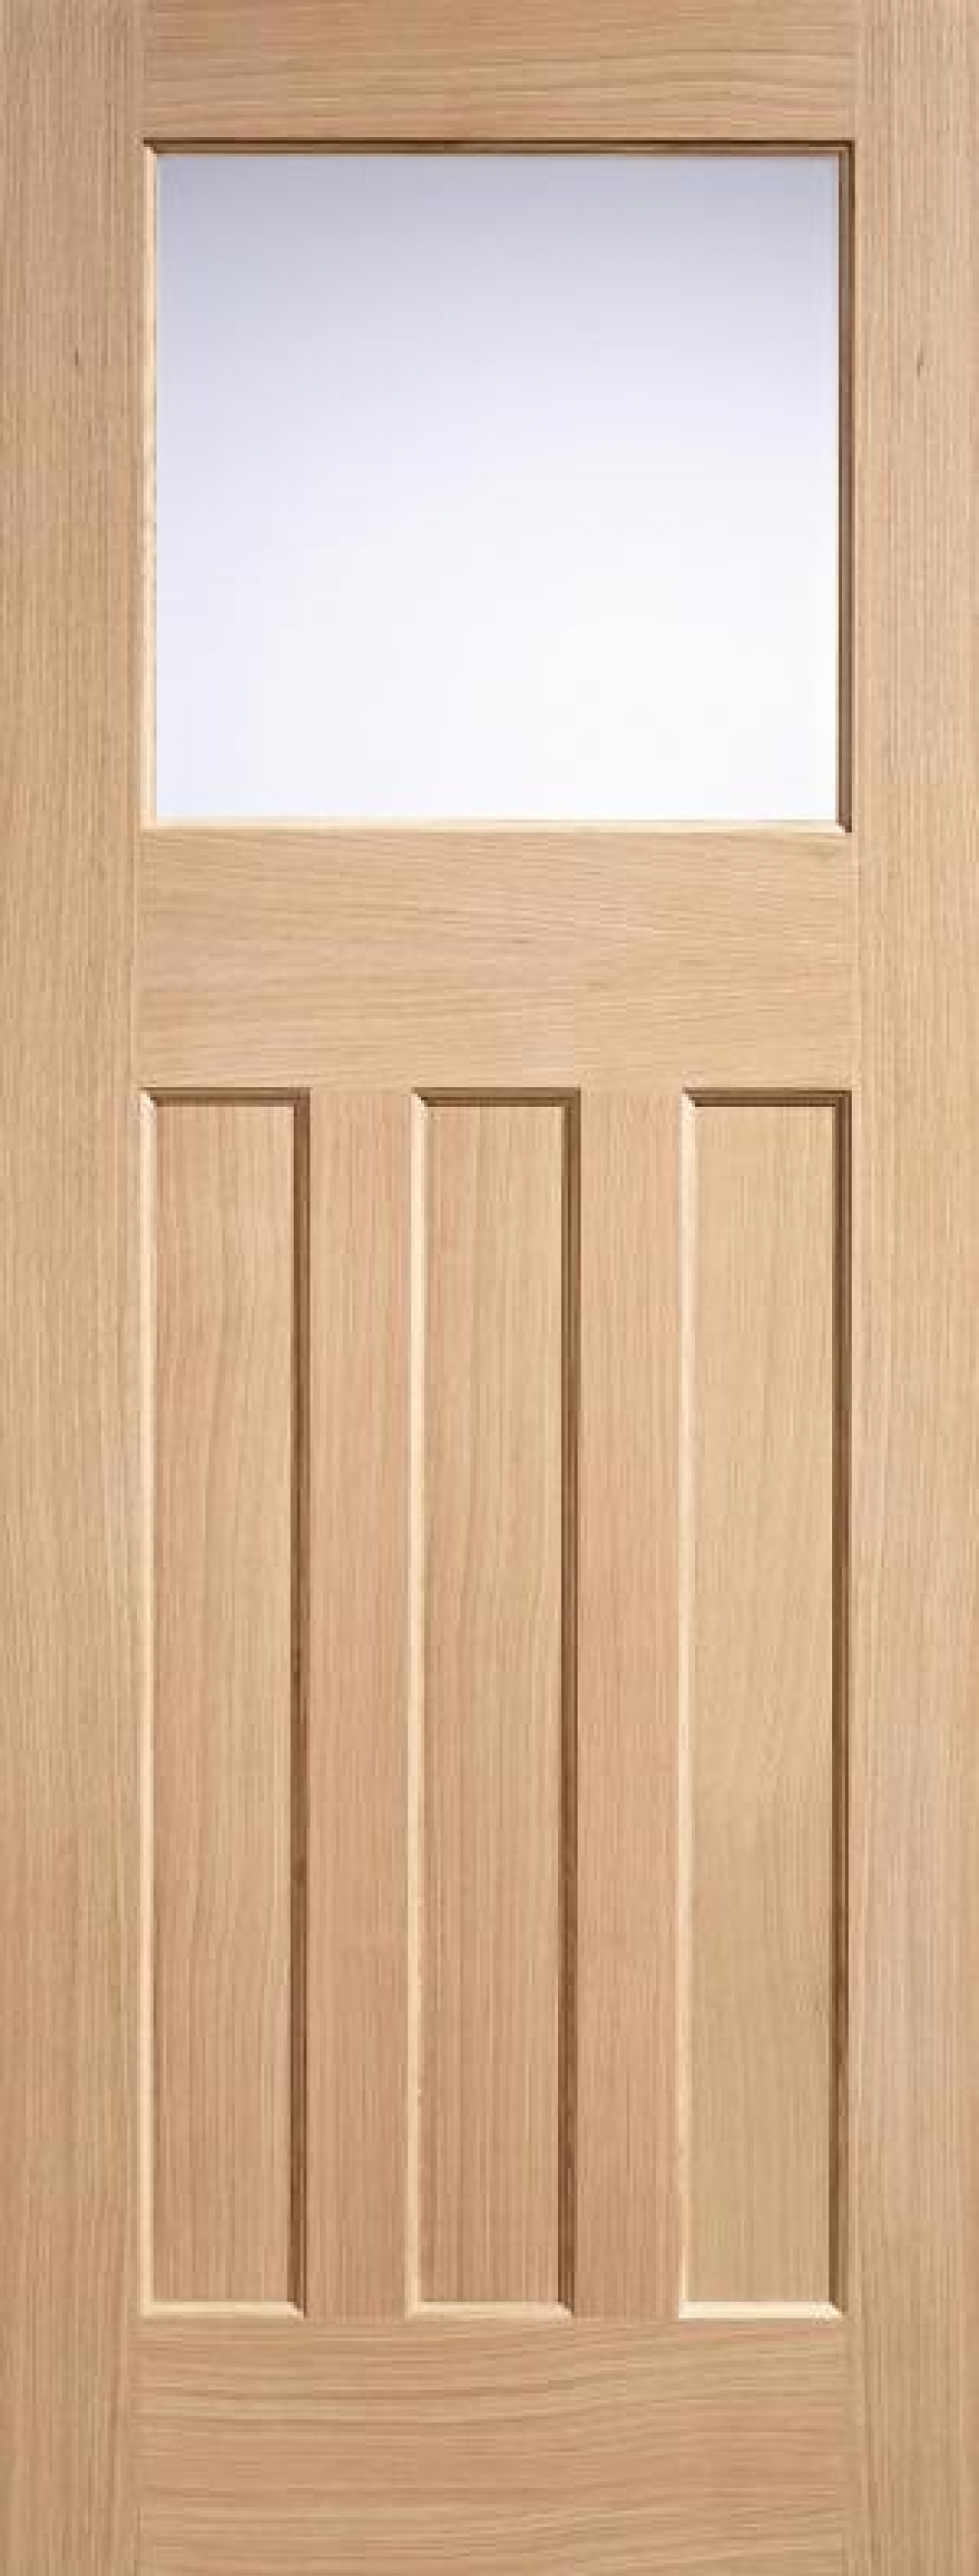 DX 30's Style Oak Door Frosted